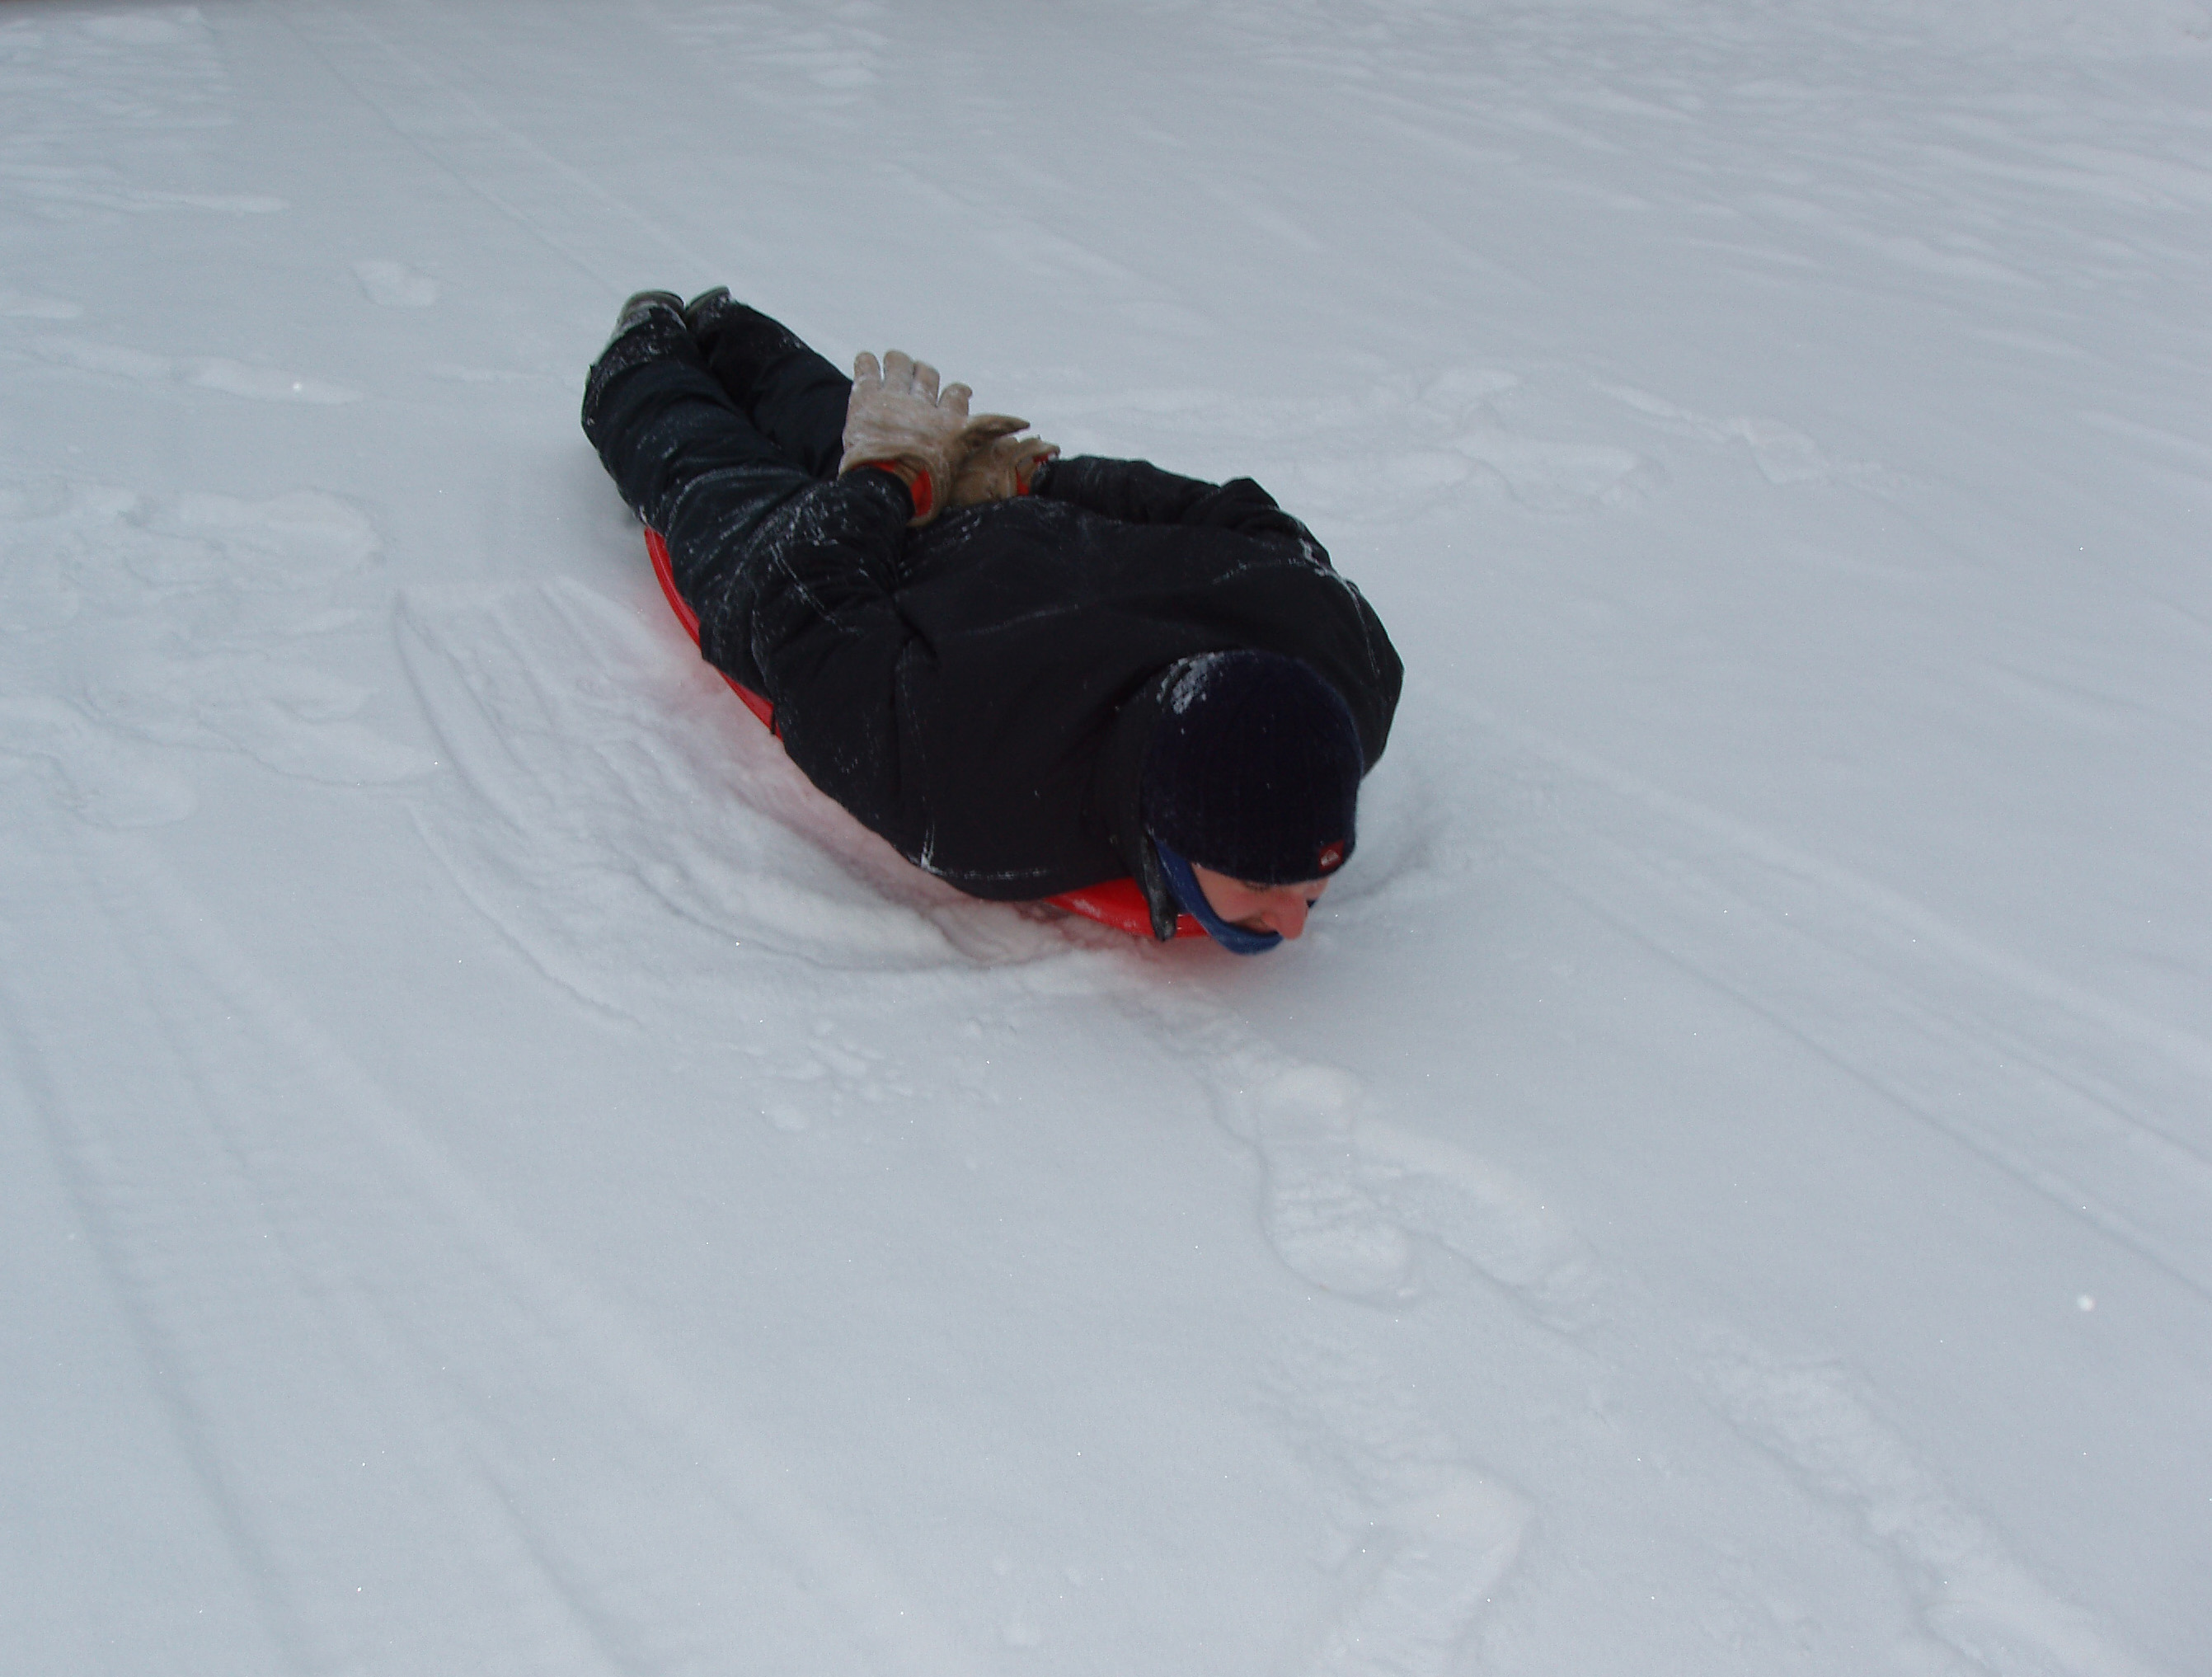 The Art of Sledding